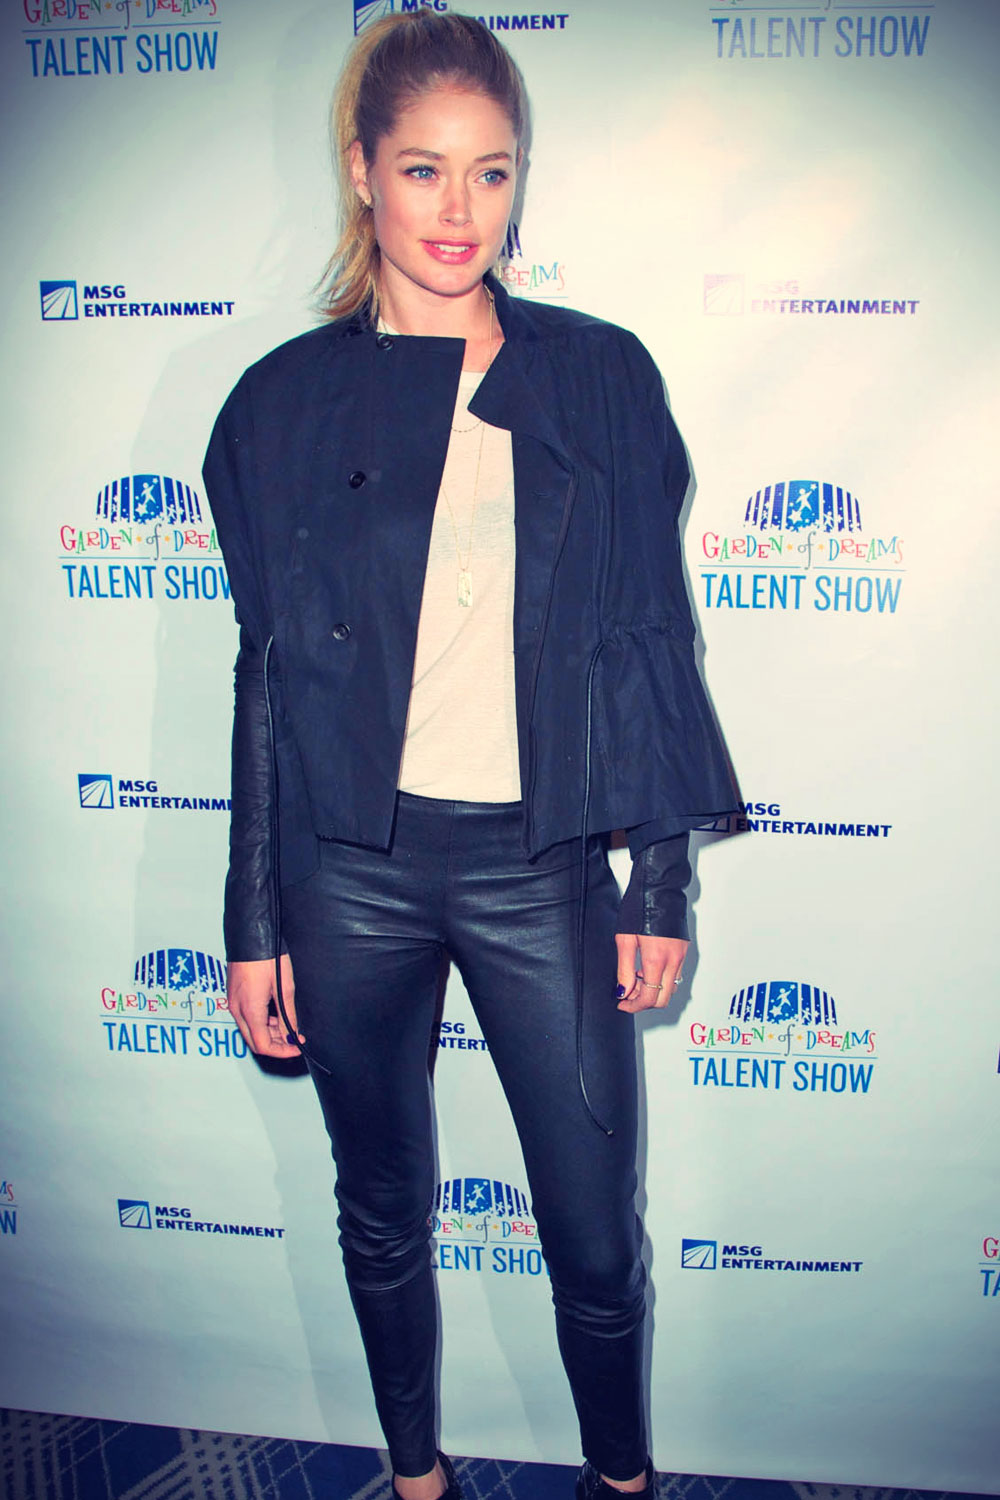 Doutzen Kroes attends 2013 Garden of Dreams Foundation Talent Show